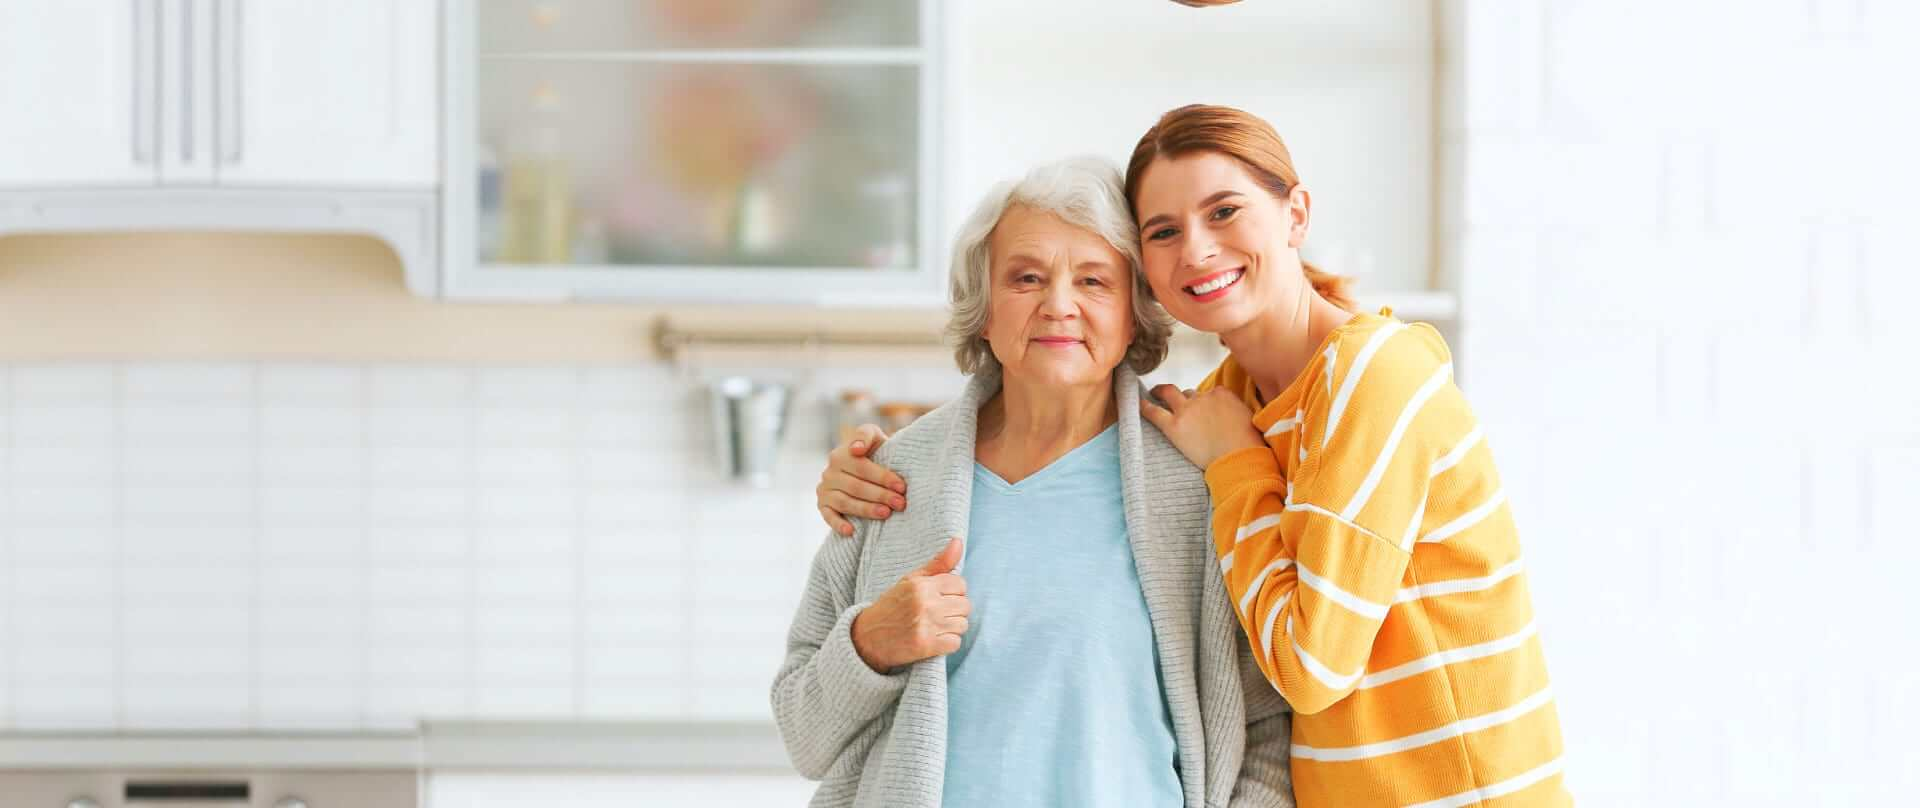 portrait of caregiver and senior woman at the kitchen